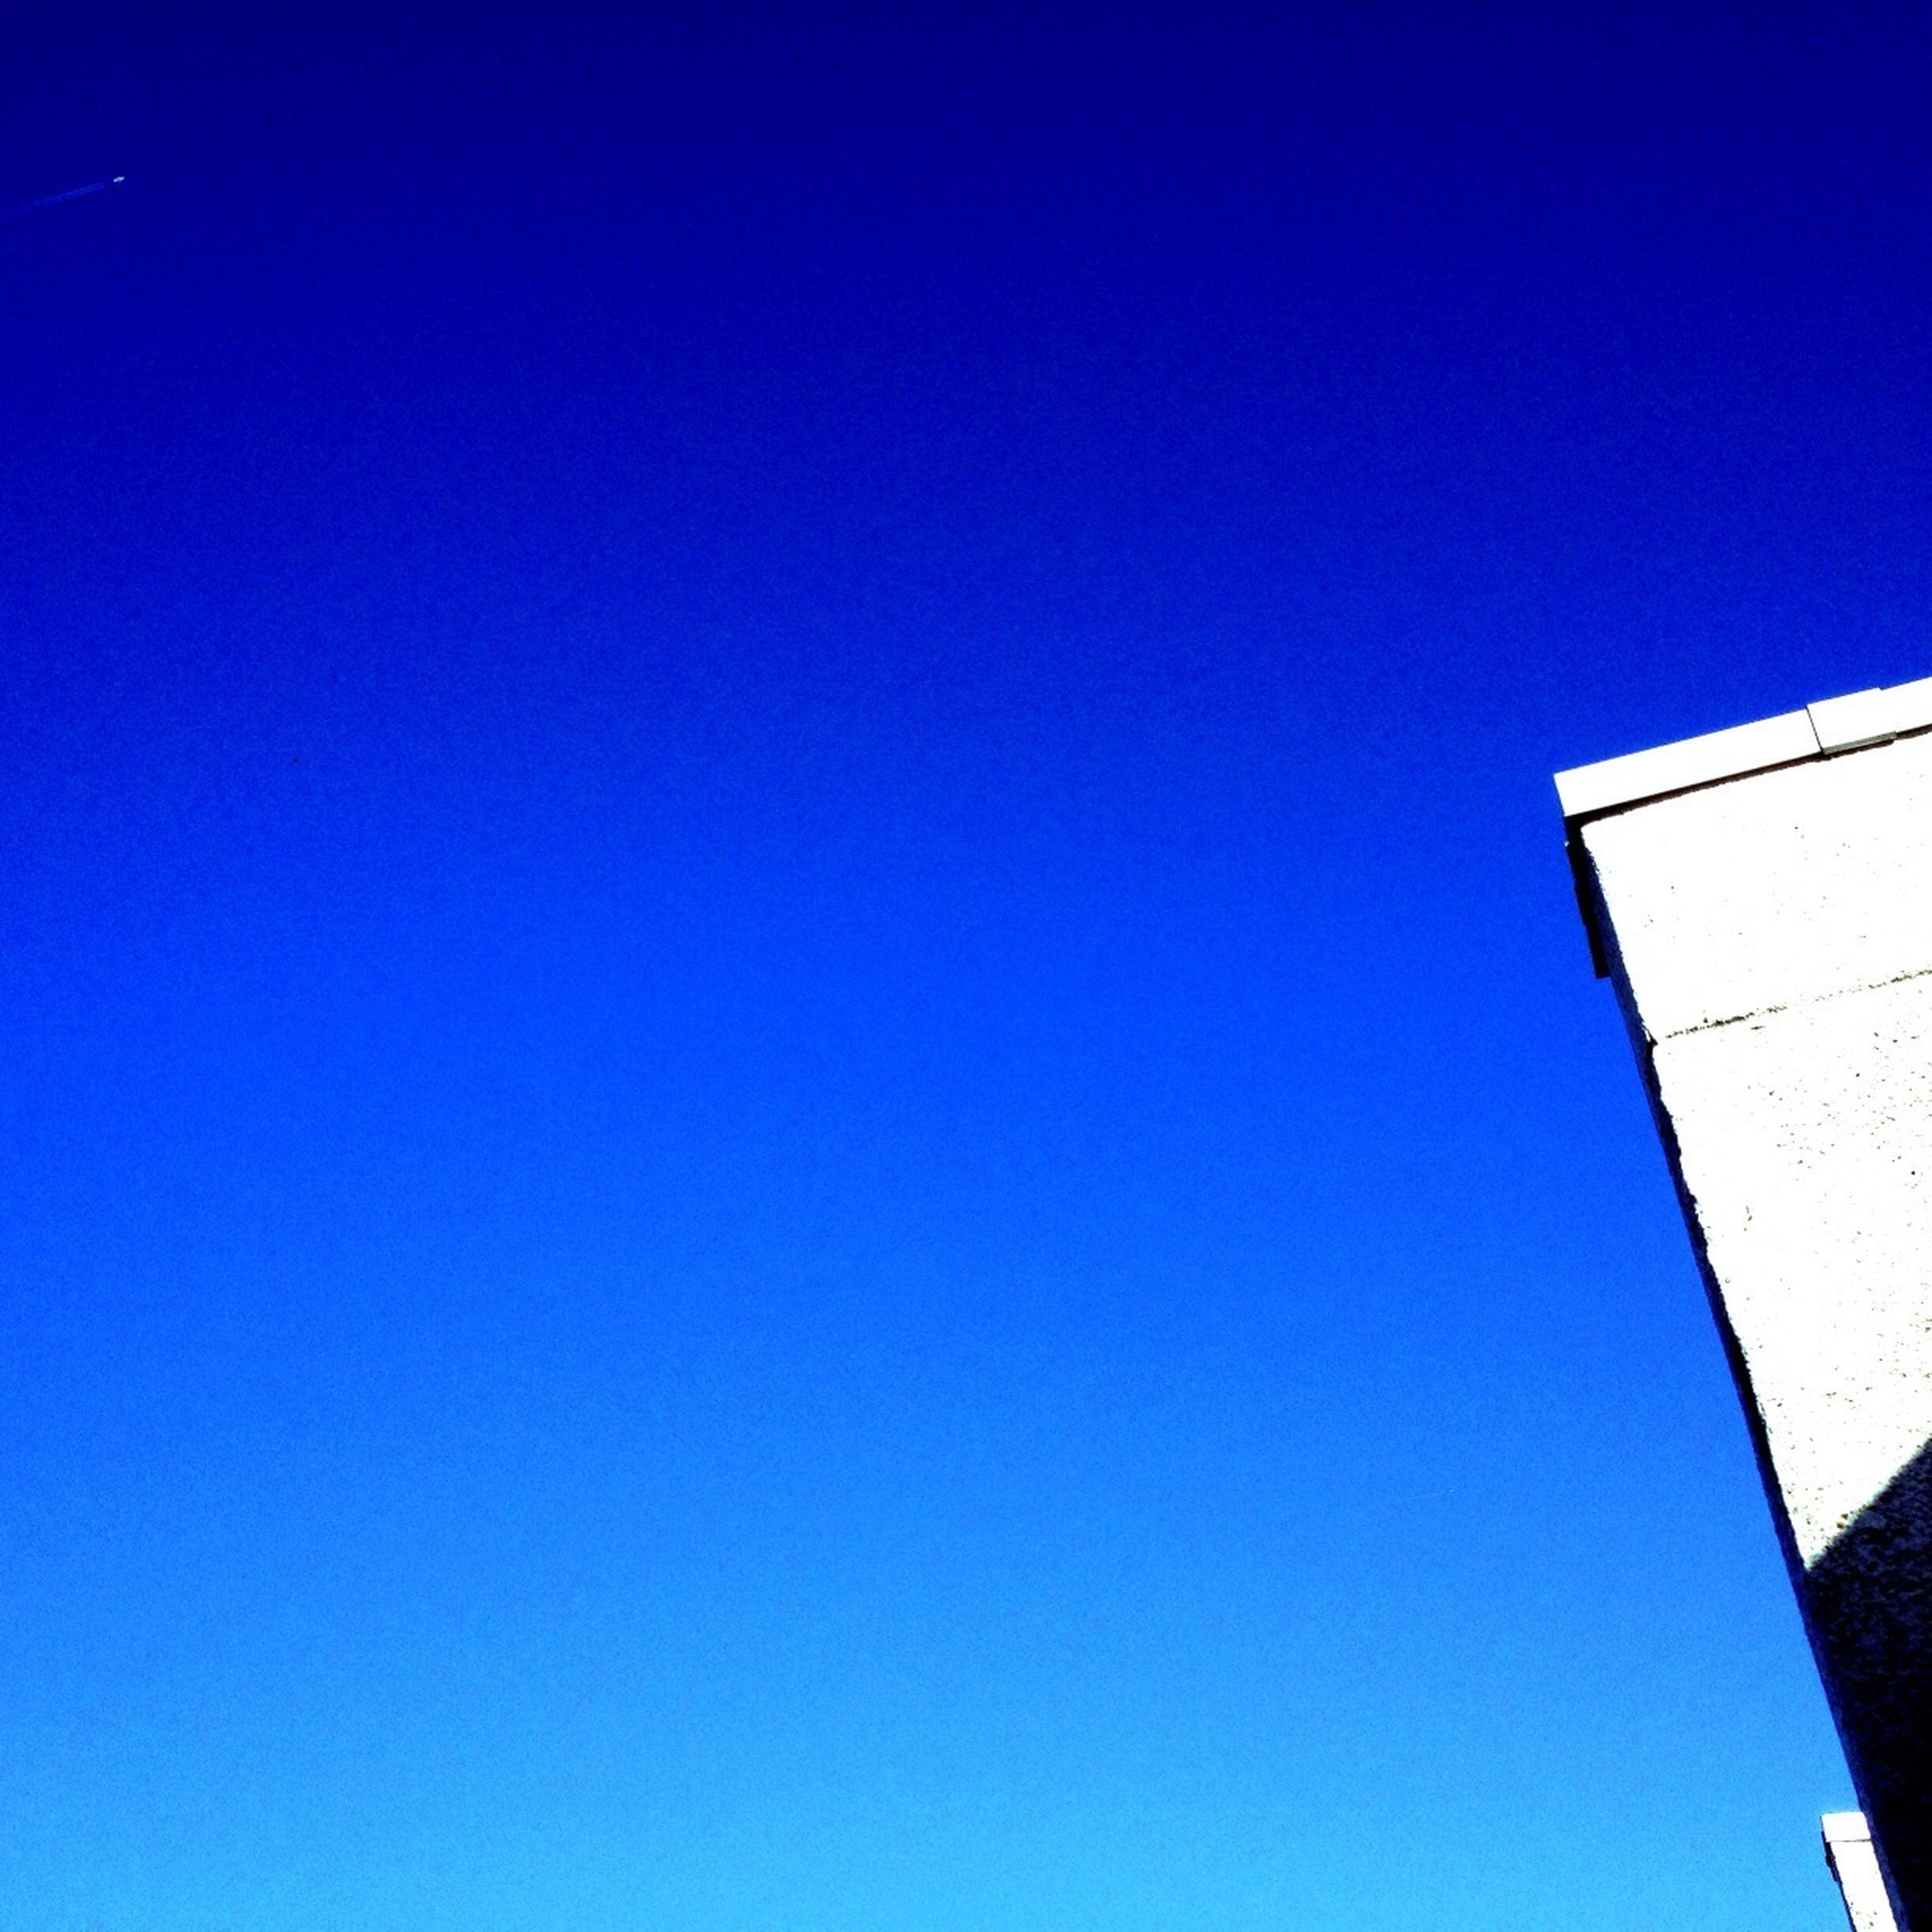 blue, clear sky, architecture, low angle view, copy space, built structure, building exterior, building, high section, day, outdoors, no people, sunlight, wall - building feature, residential structure, part of, house, wall, residential building, nature